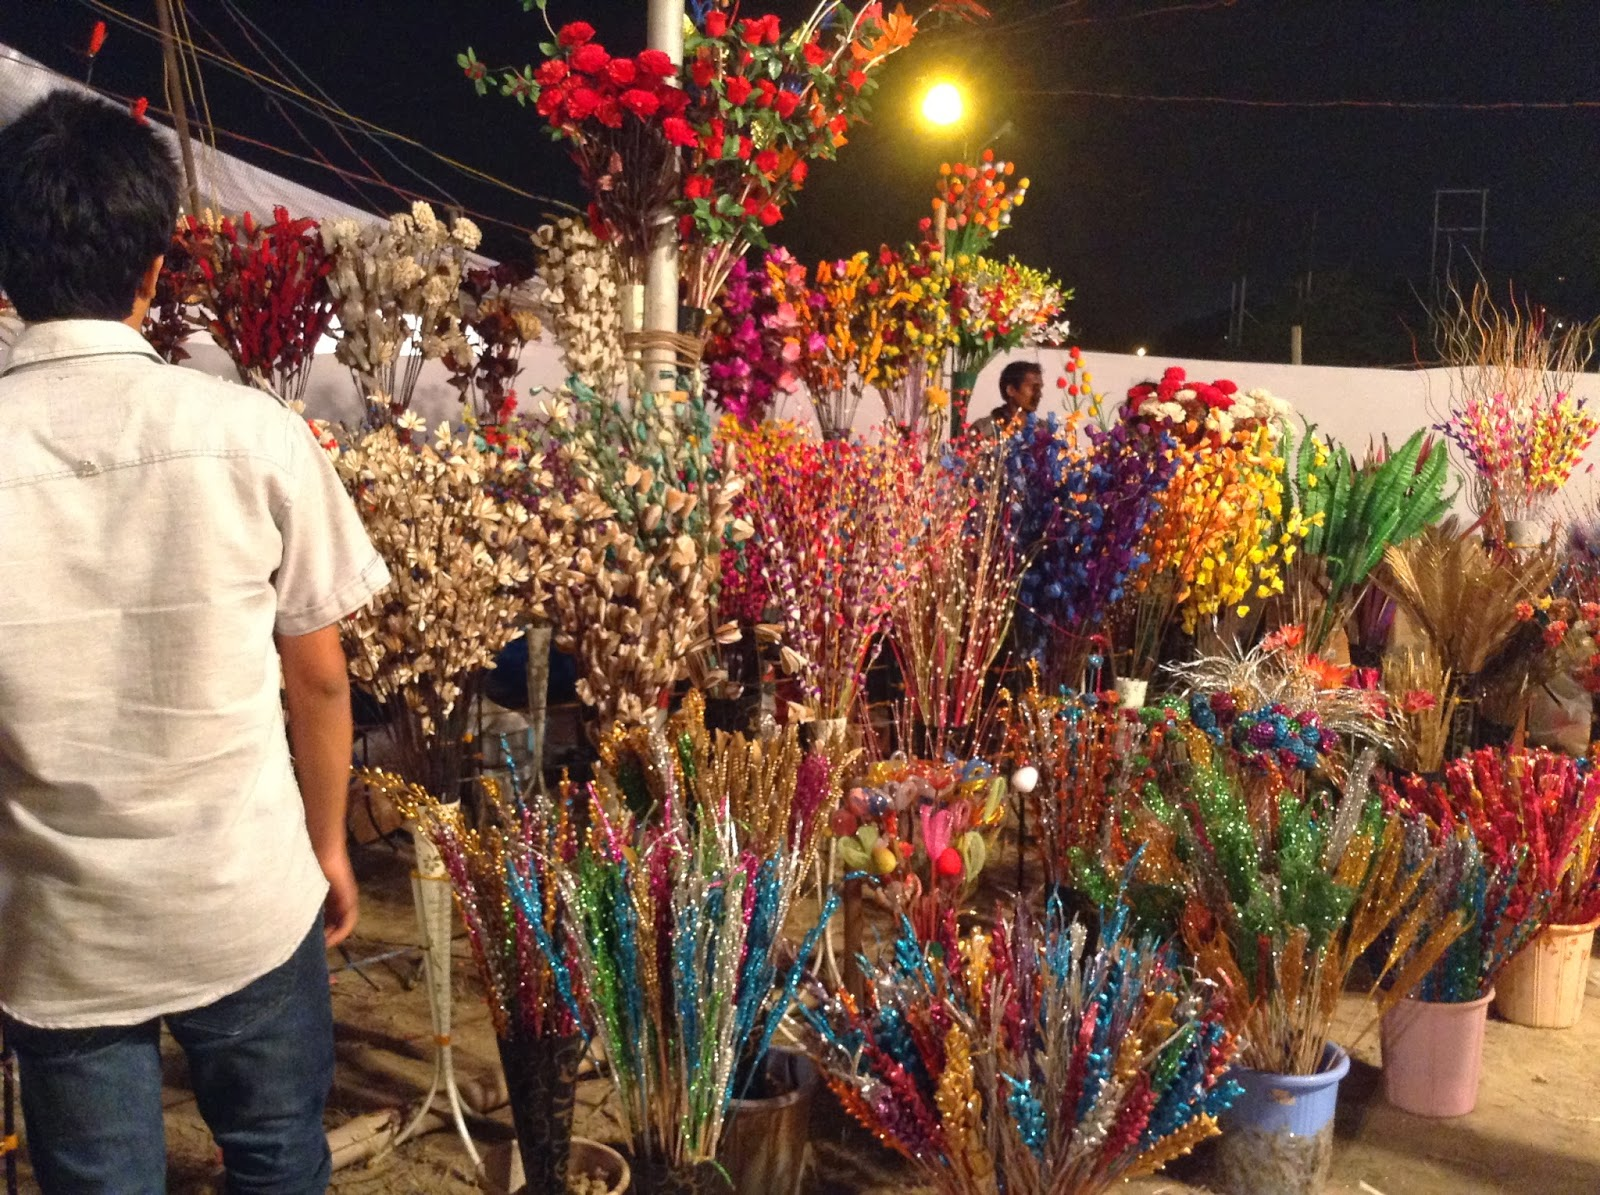 A stall at Deep Utsav 2013, Noida selling decorative flowers